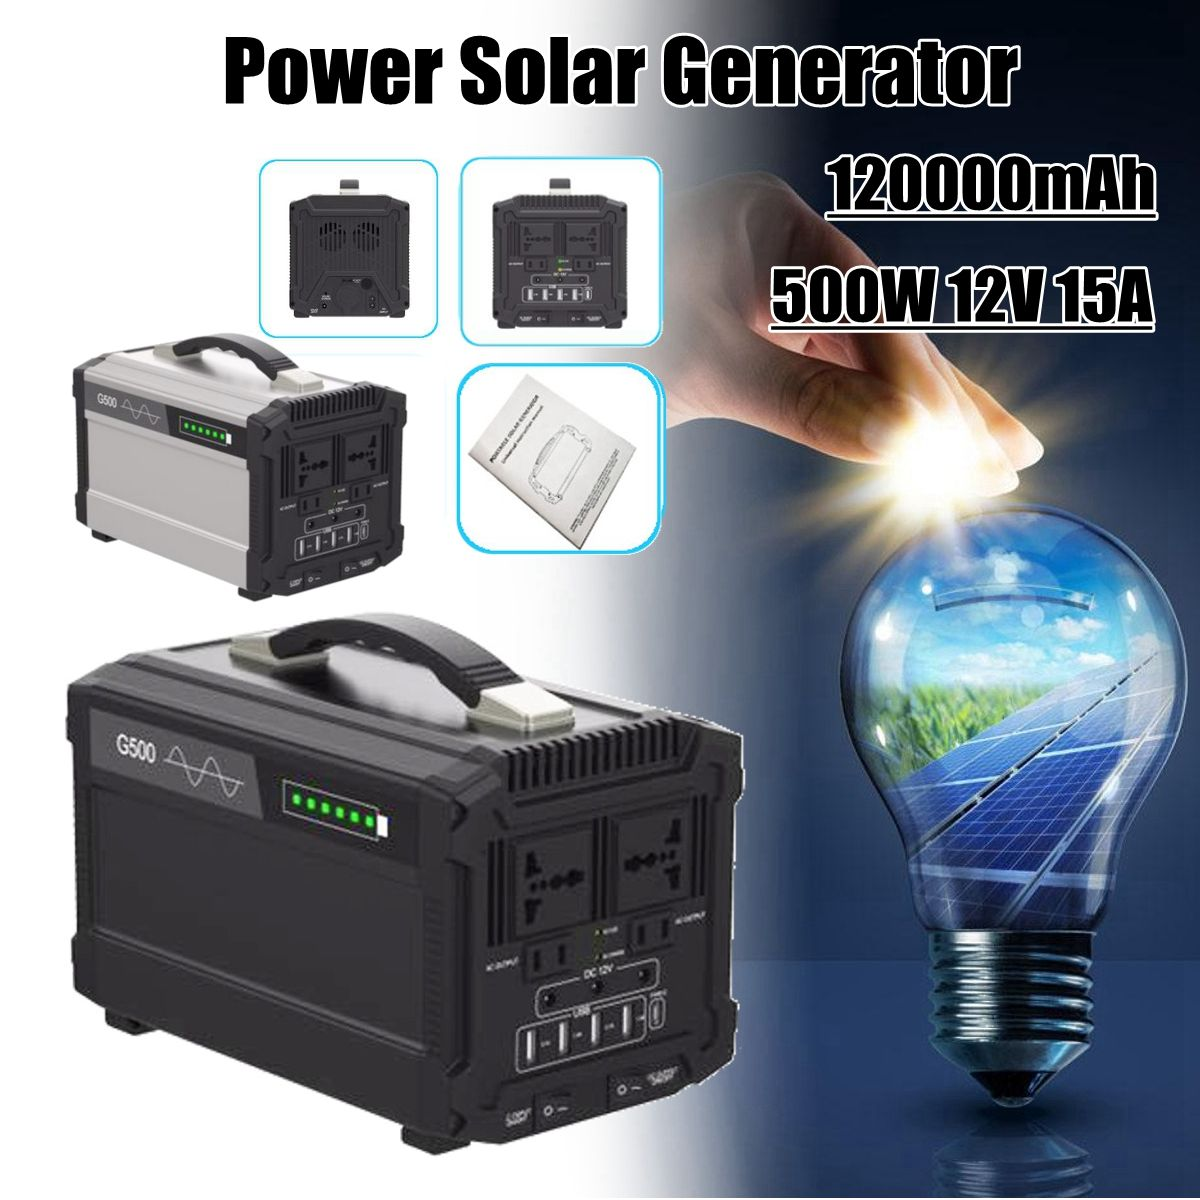 444Wh 120000mAh 500W 12V 15A Energy Storage Home Outdoor Portable Power Solar Generator Faster Charge